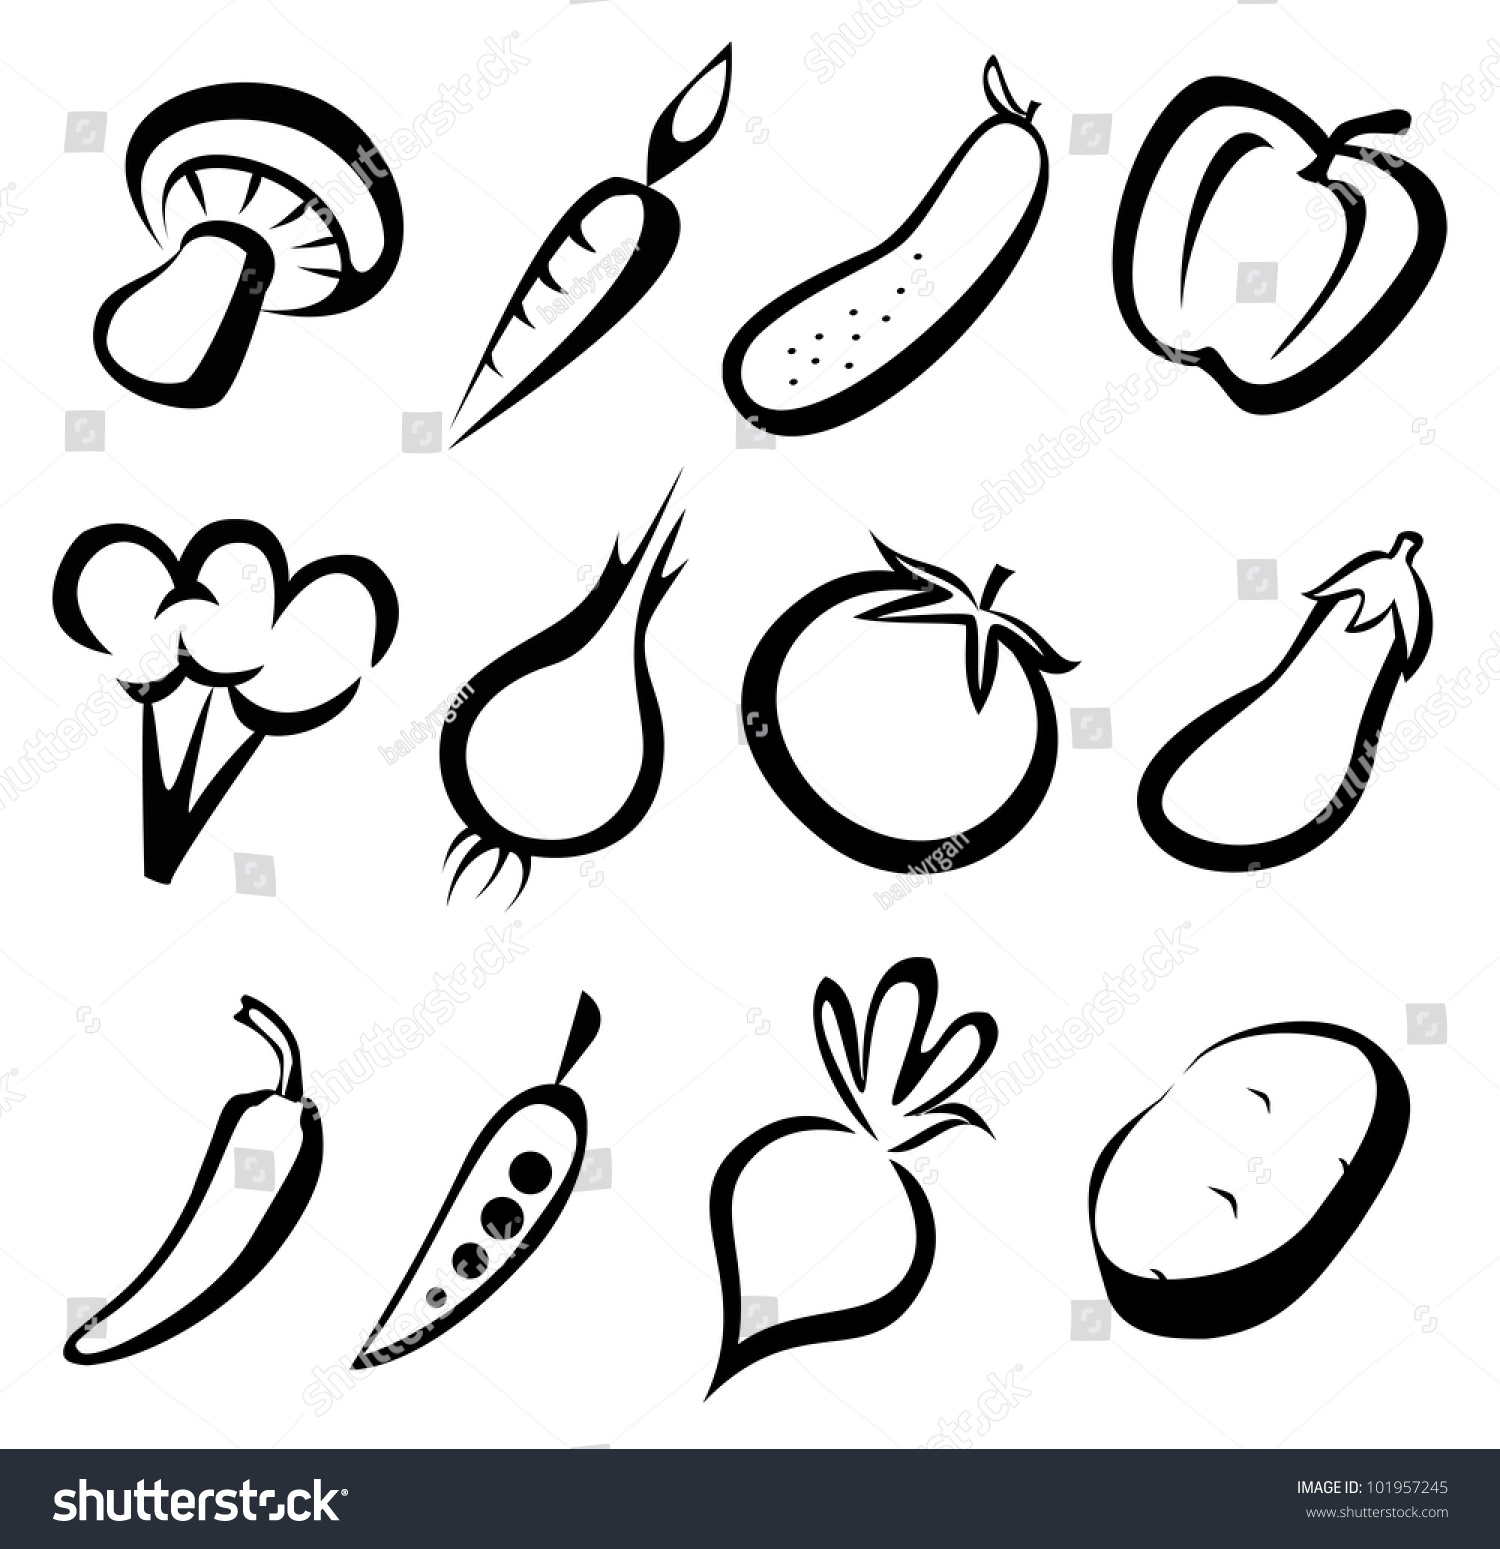 Line Drawing Zucchini : Vegetables icon set sketch black lines stock vector